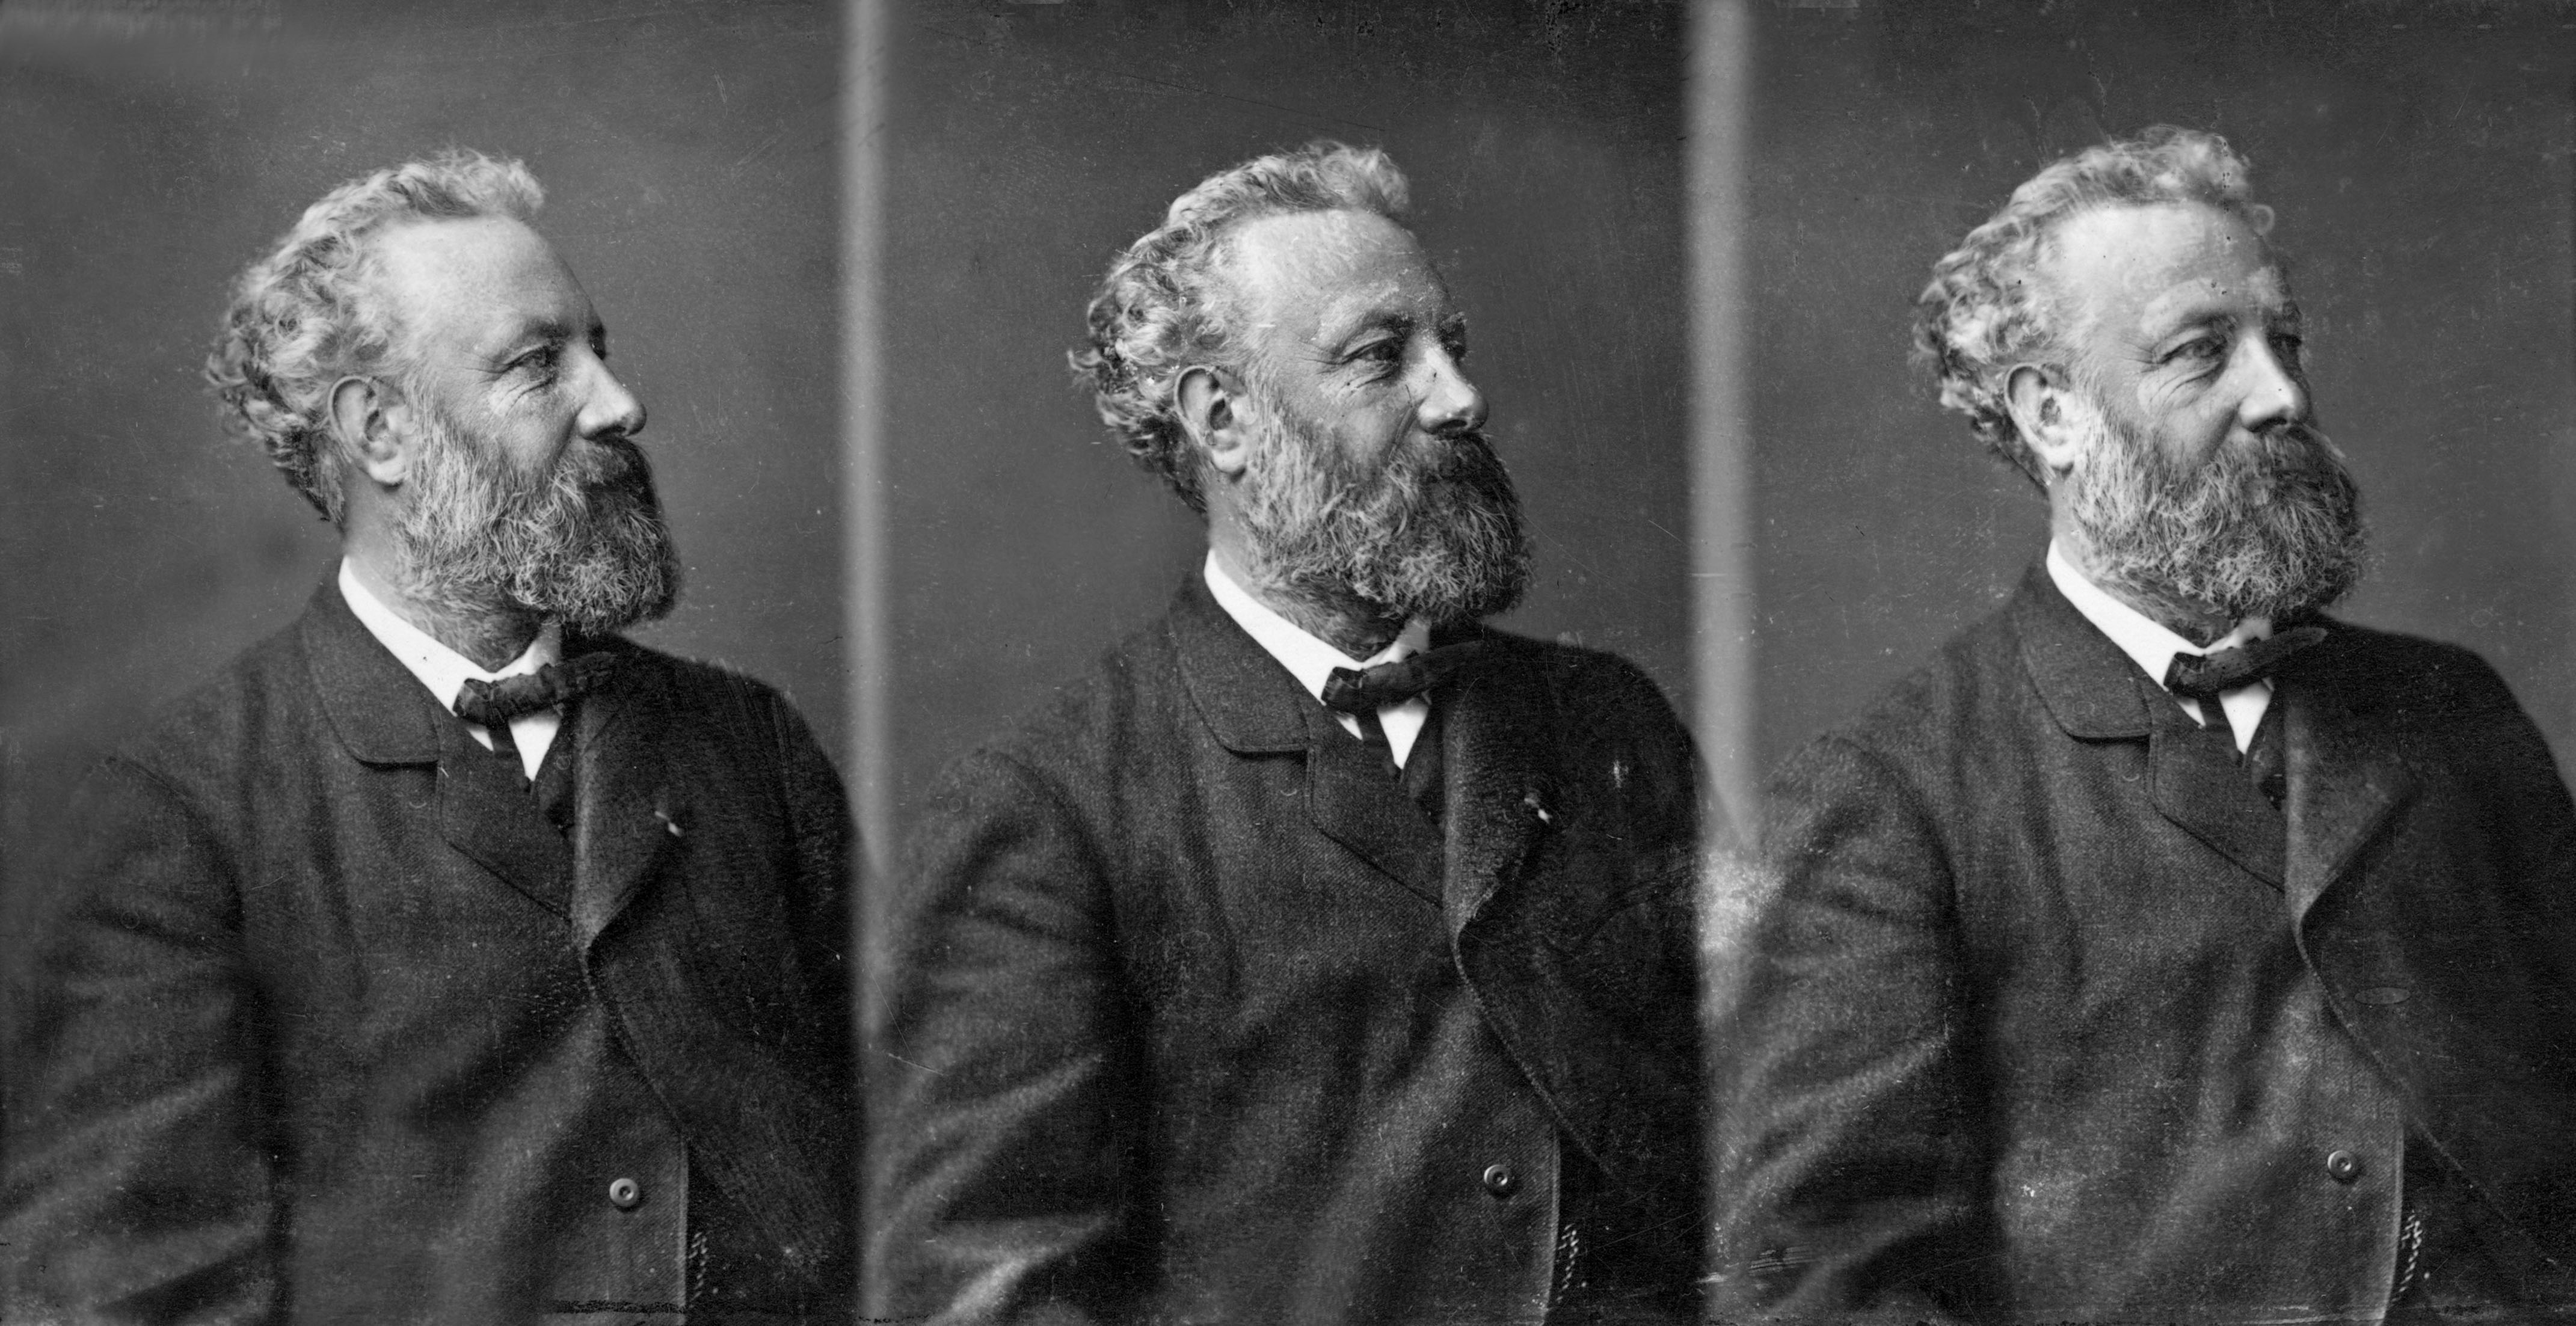 UNSPECIFIED - MARCH 18: writer Jules Verne (1828-1905) in 1875 (Photo by Apic/Getty Images)